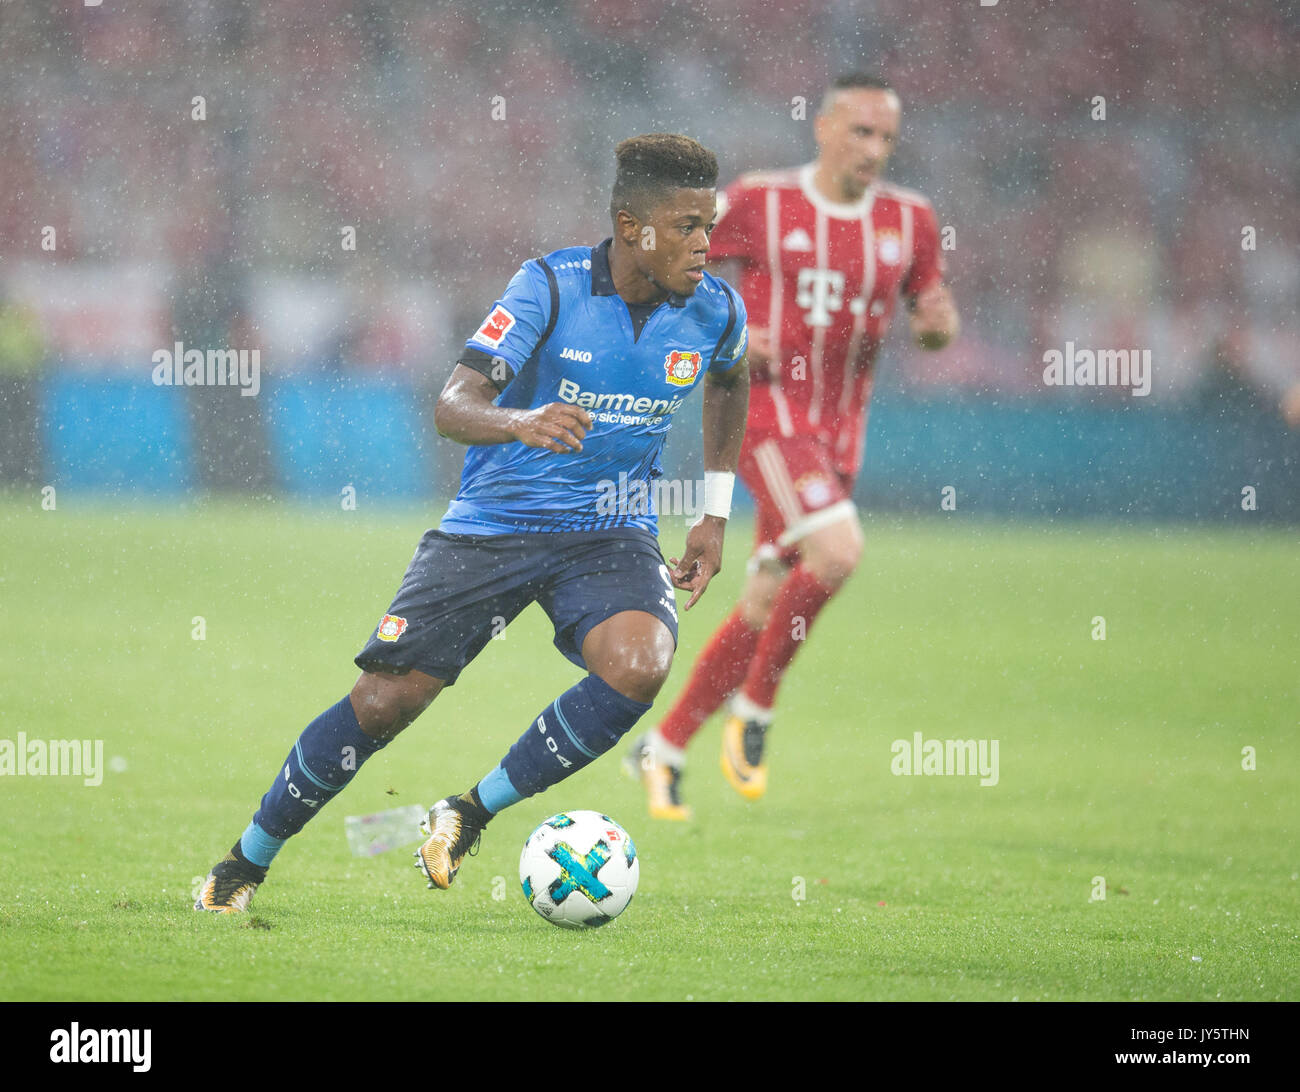 Deutschland. 18th Aug, 2017. Leon BAILEY (Leverkusen) mit Ball, Einzelaktion GES/ Fussball/ 1. Bundesliga: FC Bayern Munich - Bayer 04 Leverkusen, 18.08.2017 -- Football/ Soccer 1st. German Bundesliga Division: Bavaria Munich vs Bayer 04 Leverkusen, Munich, August 18, 2017 | Verwendung weltweit Credit: dpa/Alamy Live News - Stock Image